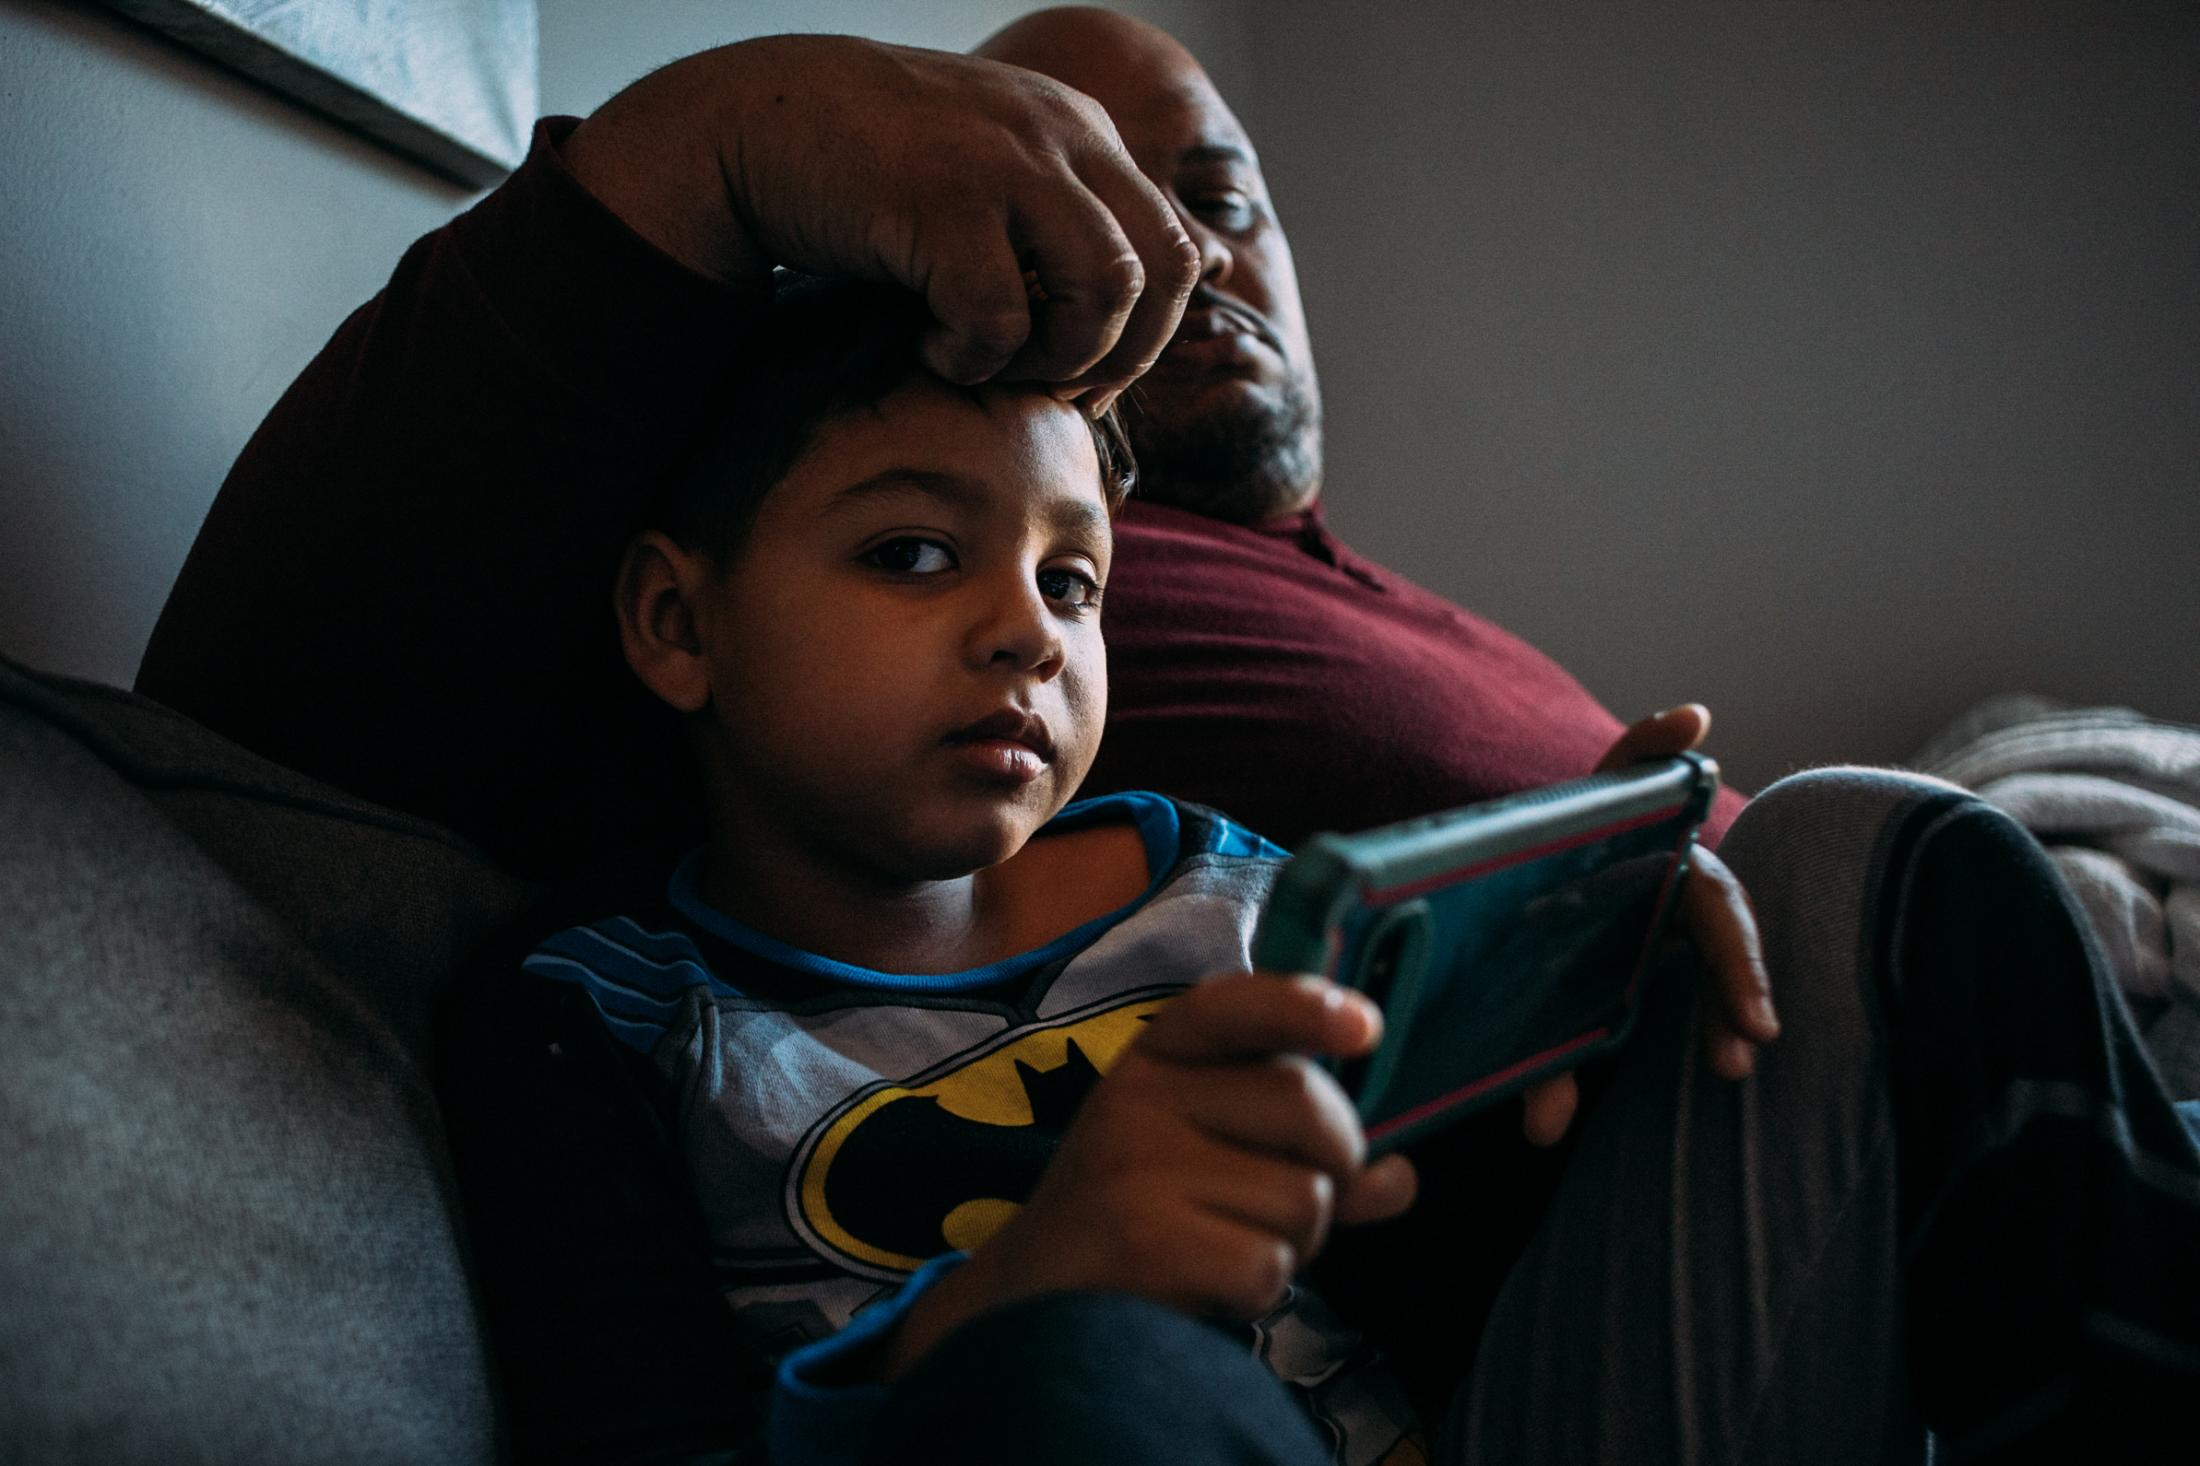 Alejandro Quiles Garcia, 40, middle, and his son, Alexander Quiles Cortés, 7, sit at a relative's home in Manhattan, New York and take advantage of a rare morning uninterrupted by the ongoing earthquakes at their hometown in Puerto Rico, for CNN